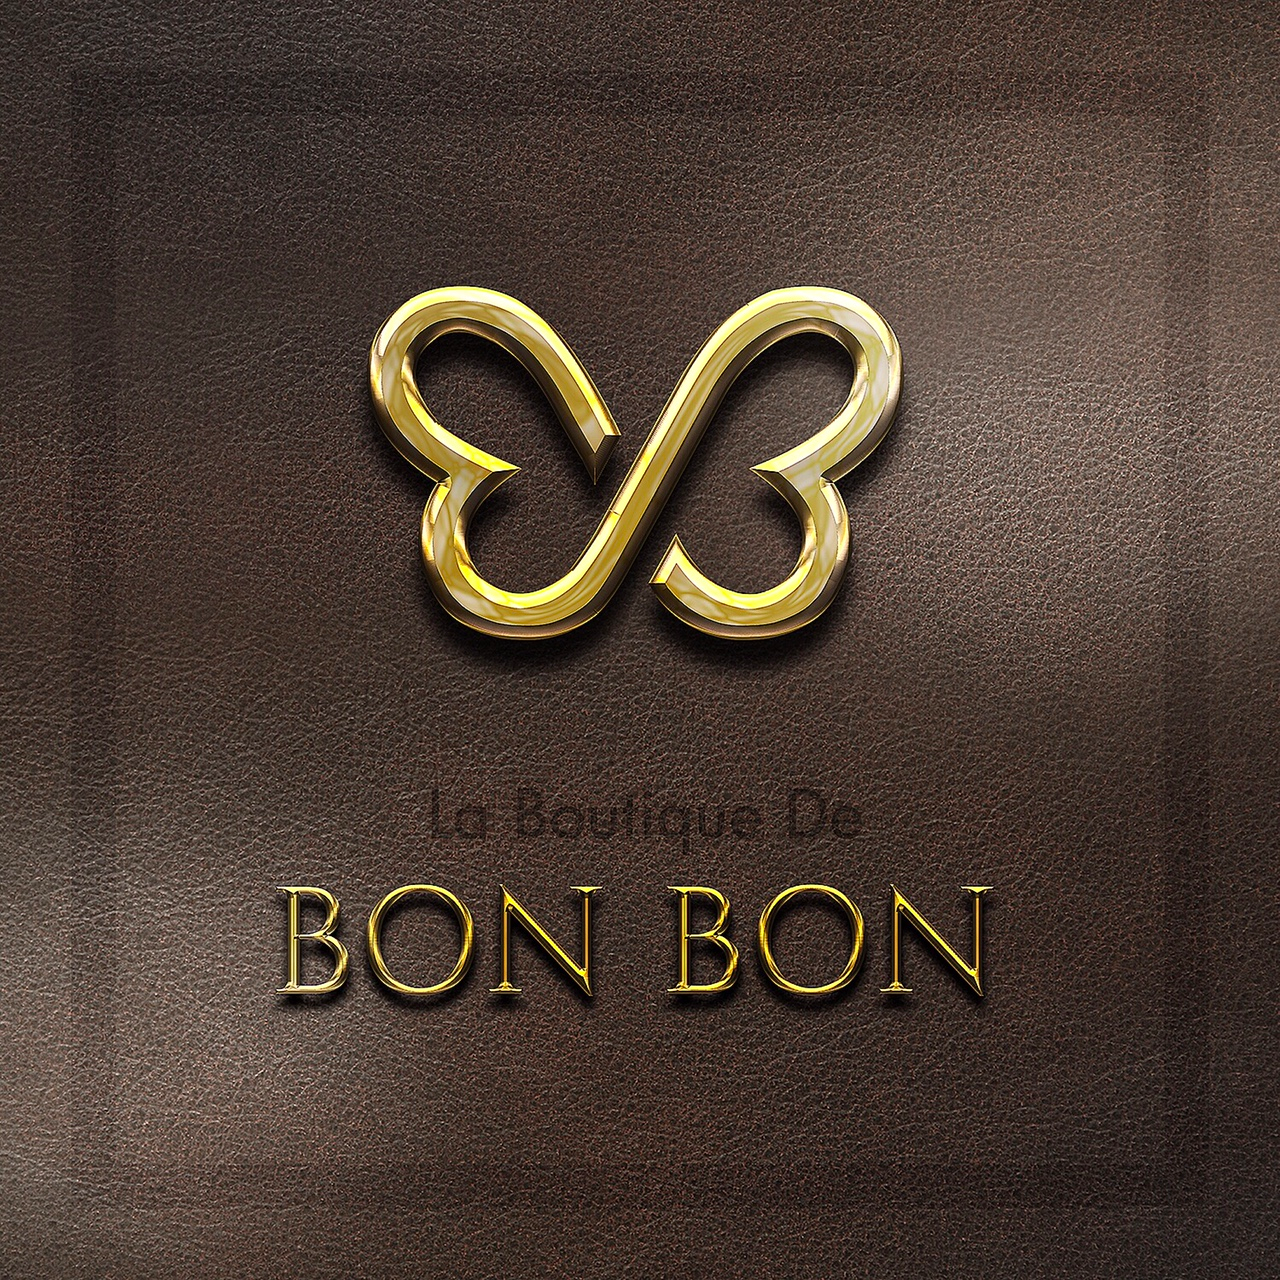 La Boutique de Bon Bon in New Jersey